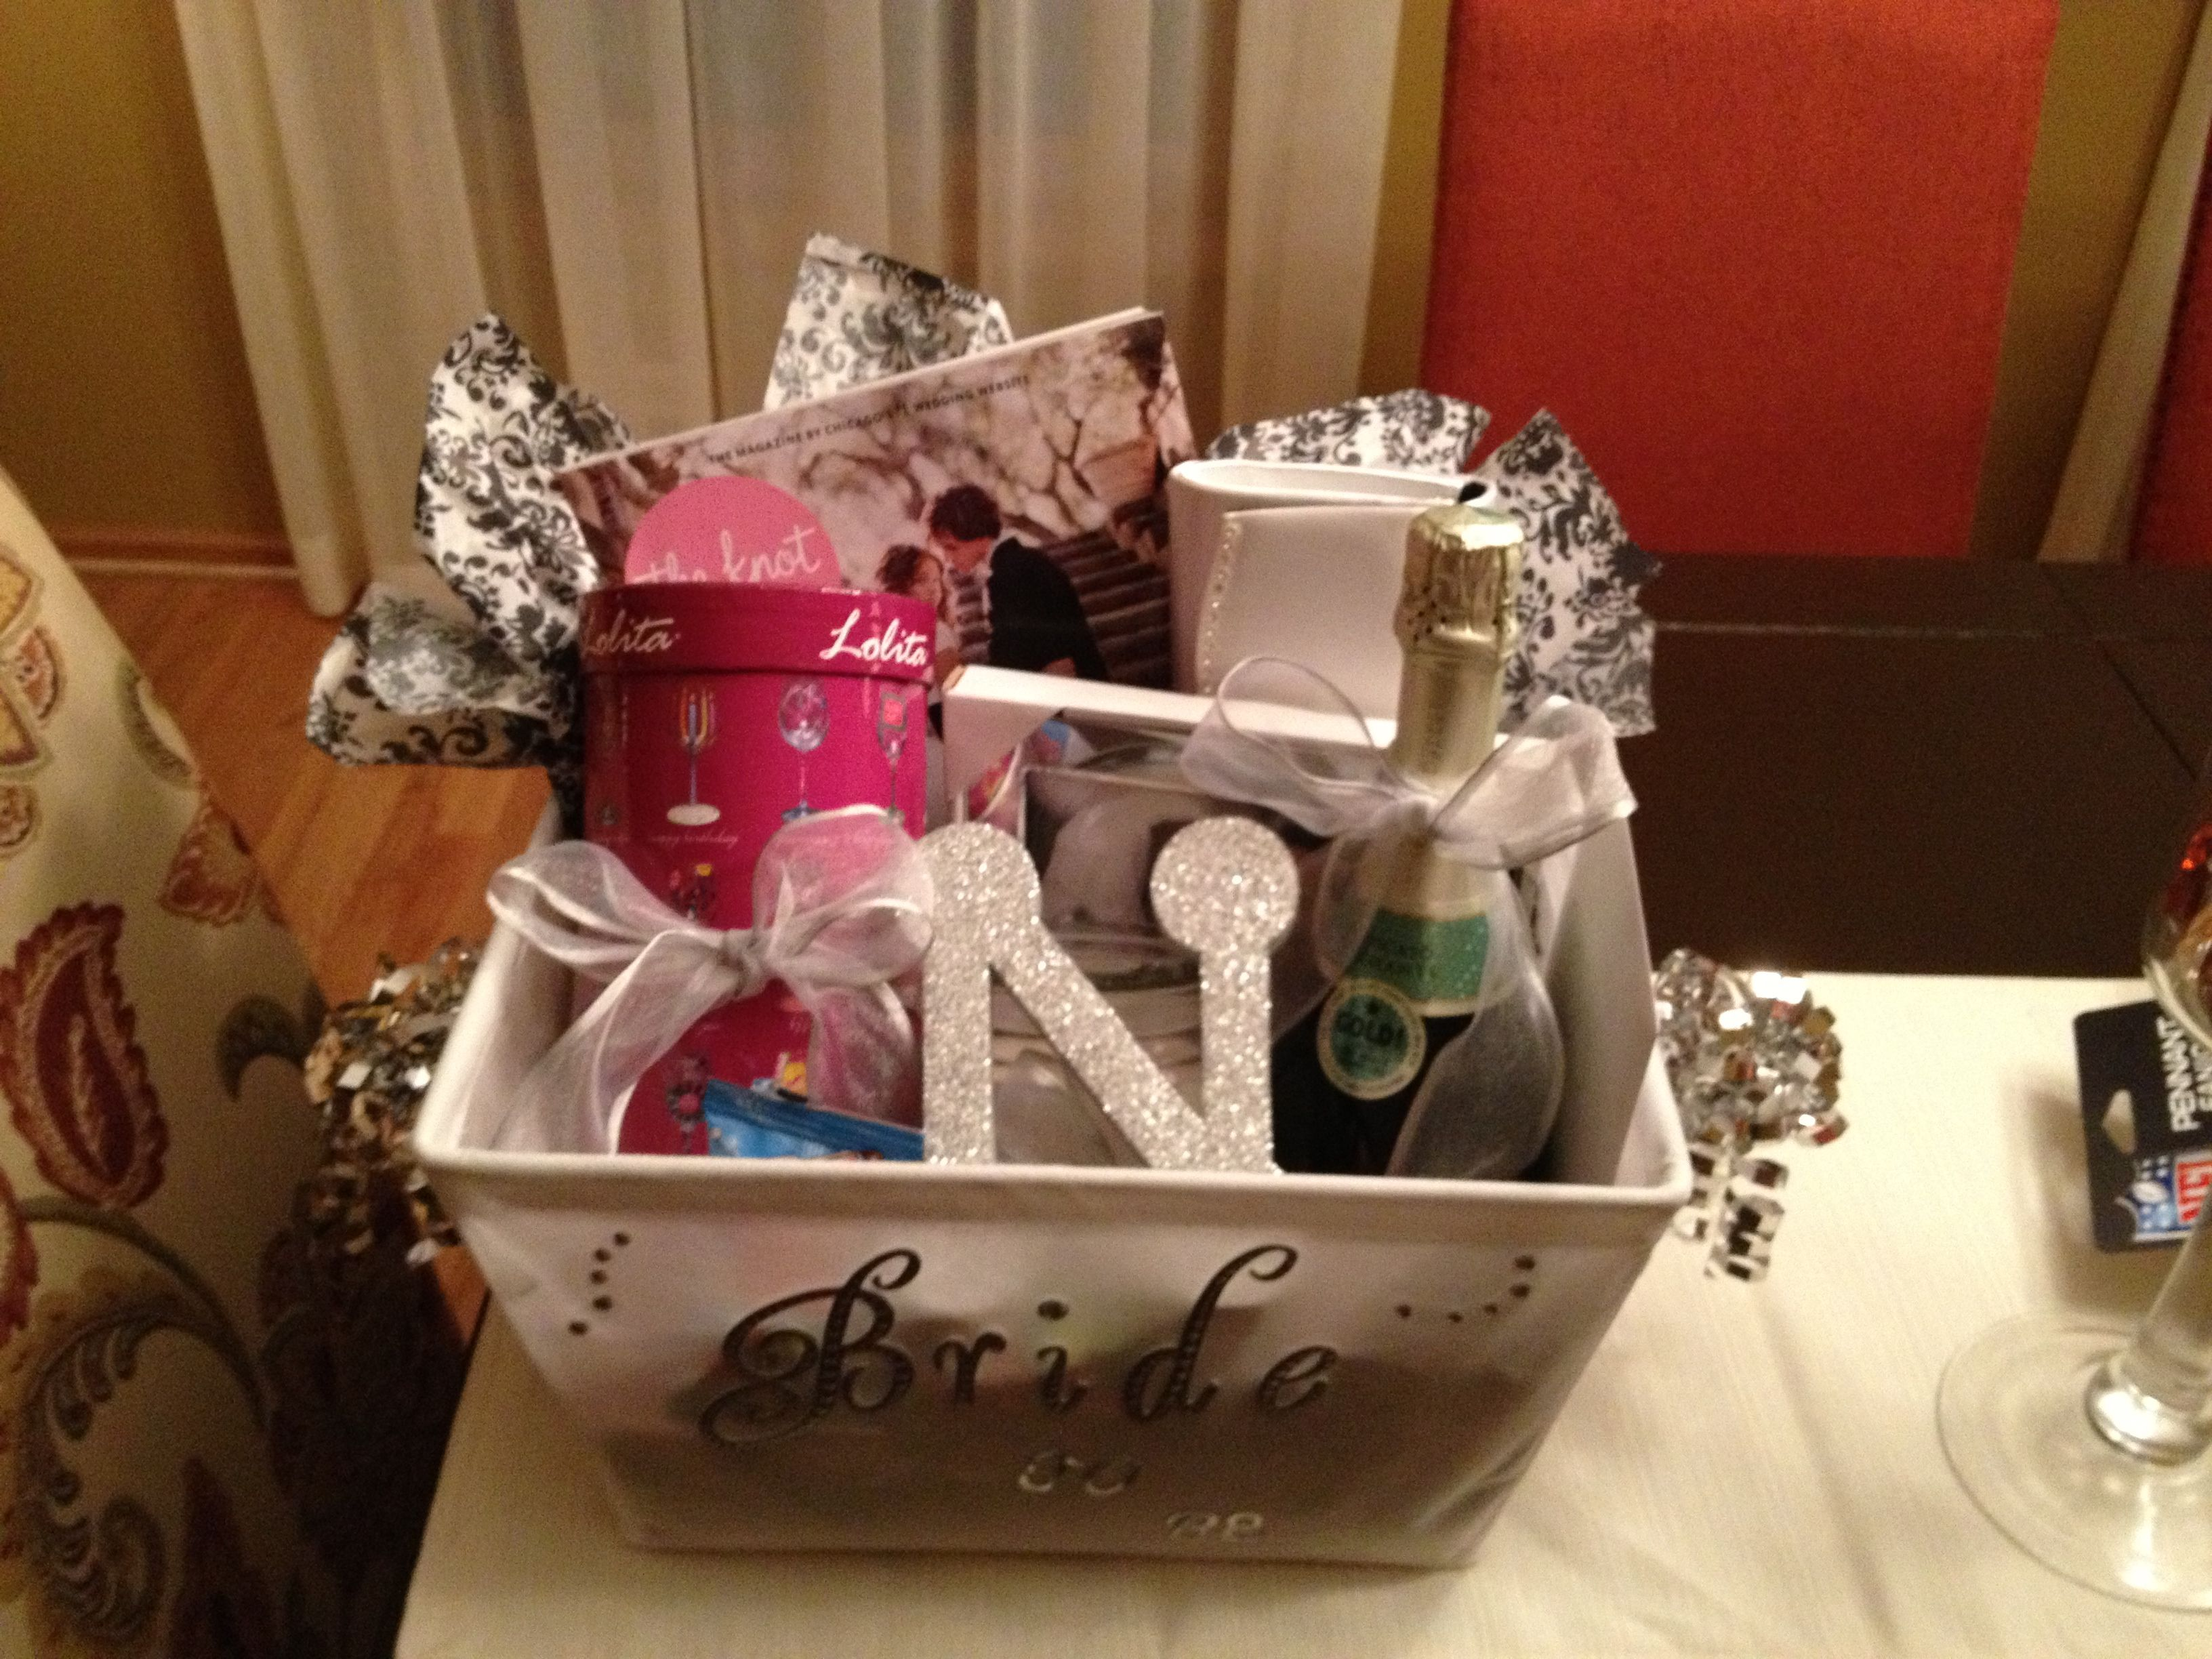 Wedding Magazine Subscription Gift: Bride To Be Basket! I Made This For My Best Friend Shawna